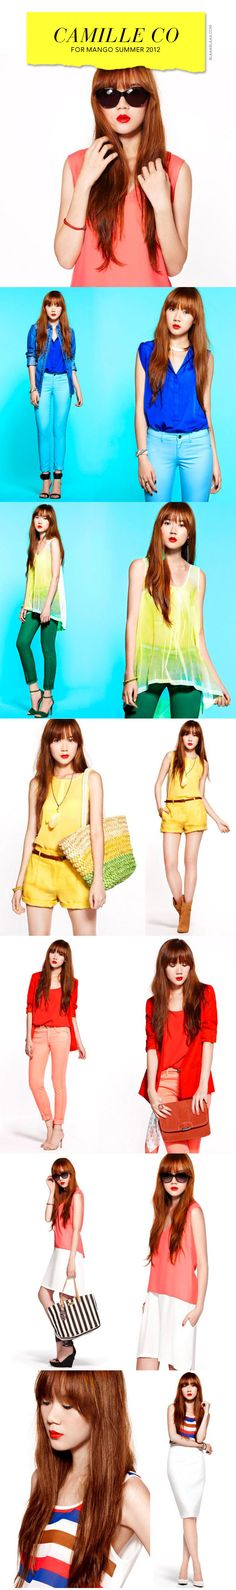 Camille Co for Mango Summer 2012